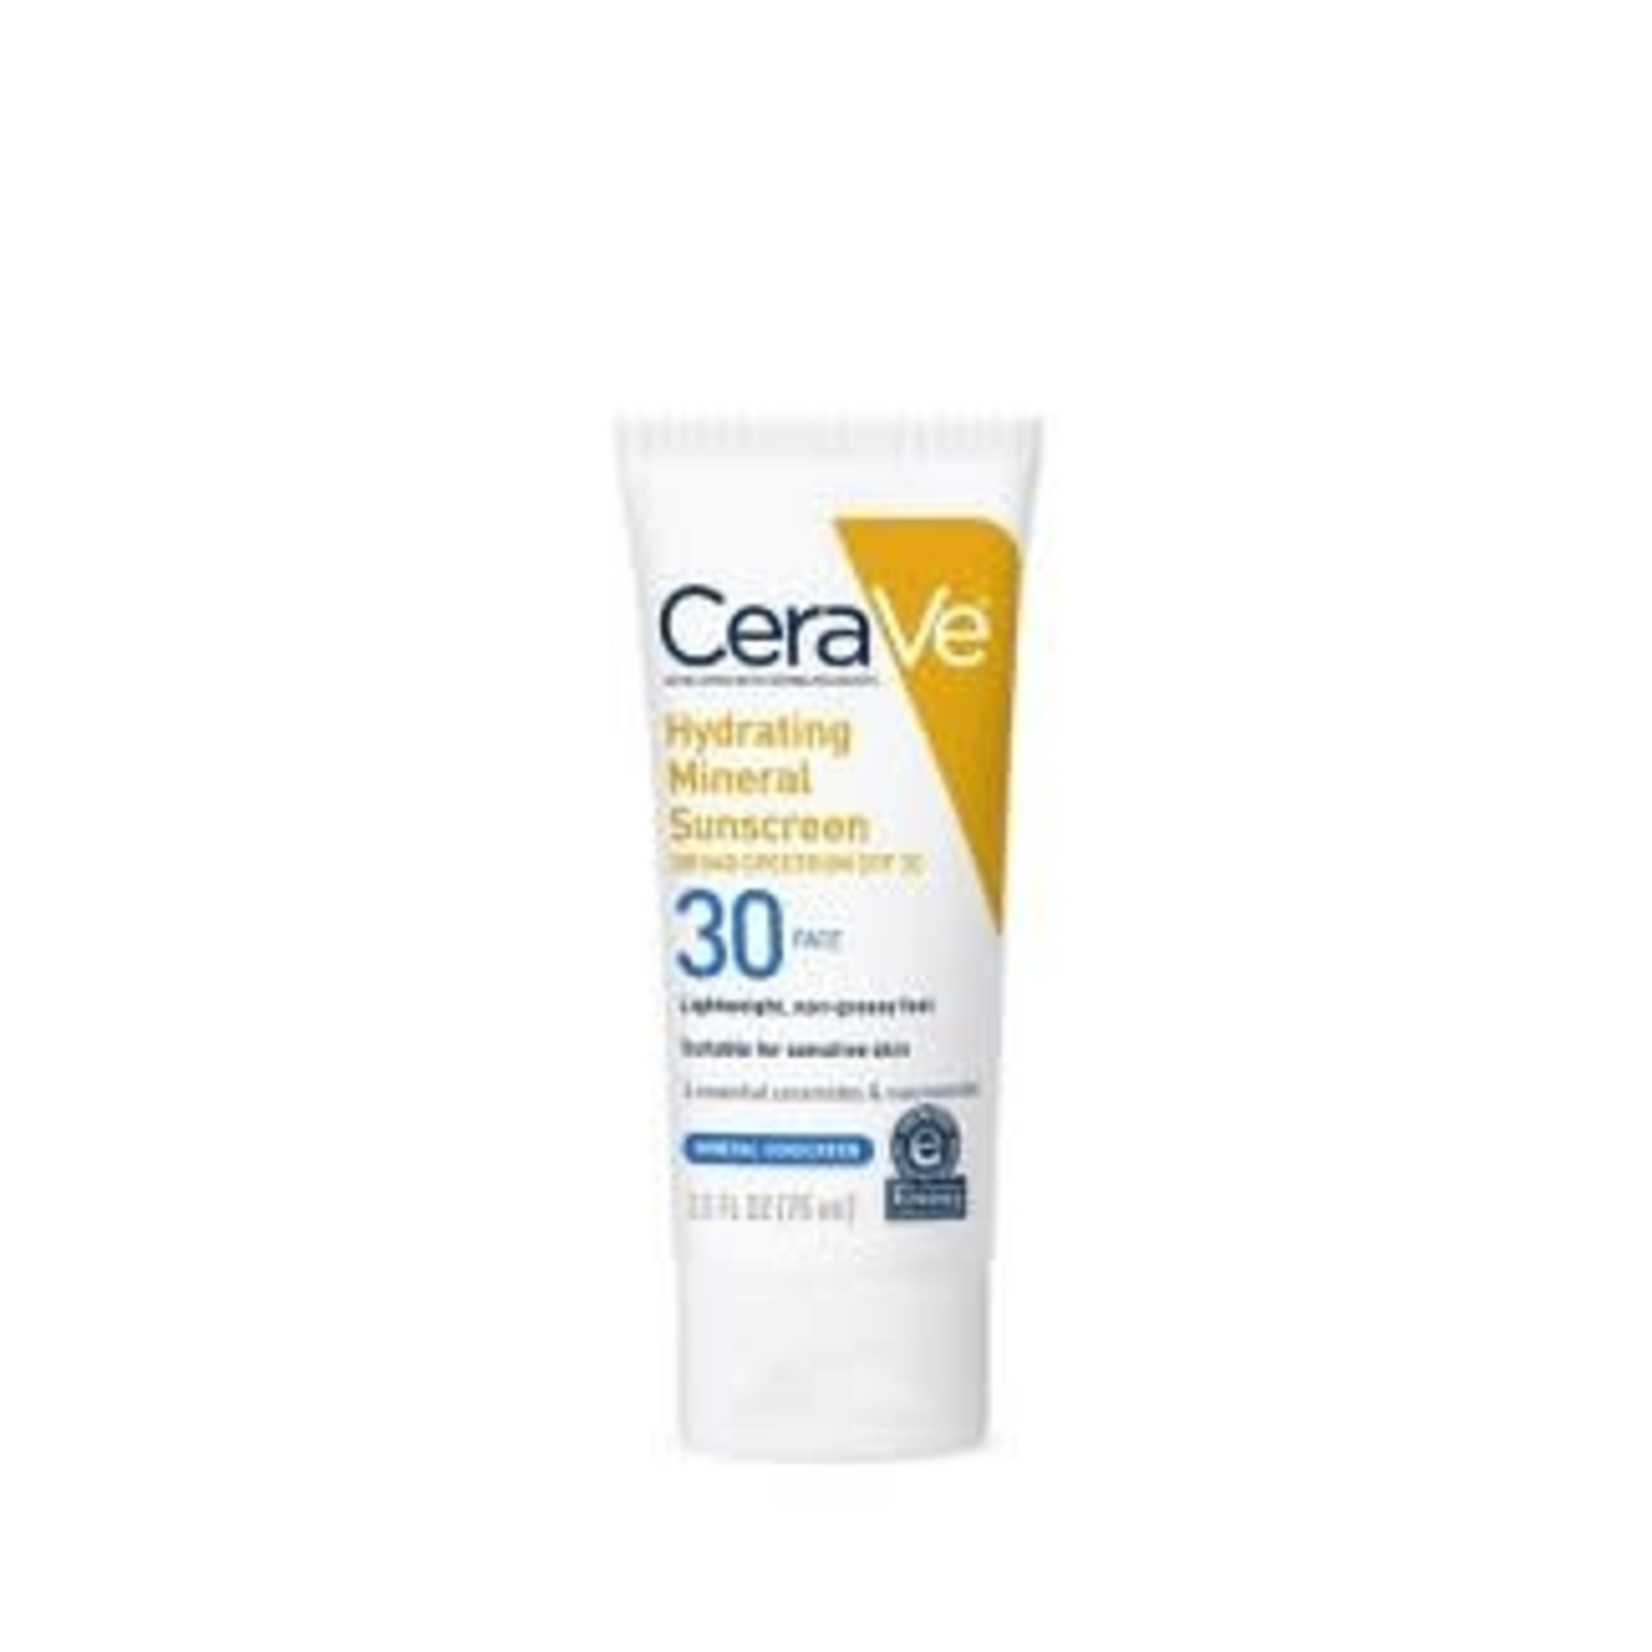 CeraVe Hydrating Mineral Face Sunscreen Lotion with Zinc Oxide – SPF 30 - 2.5oz